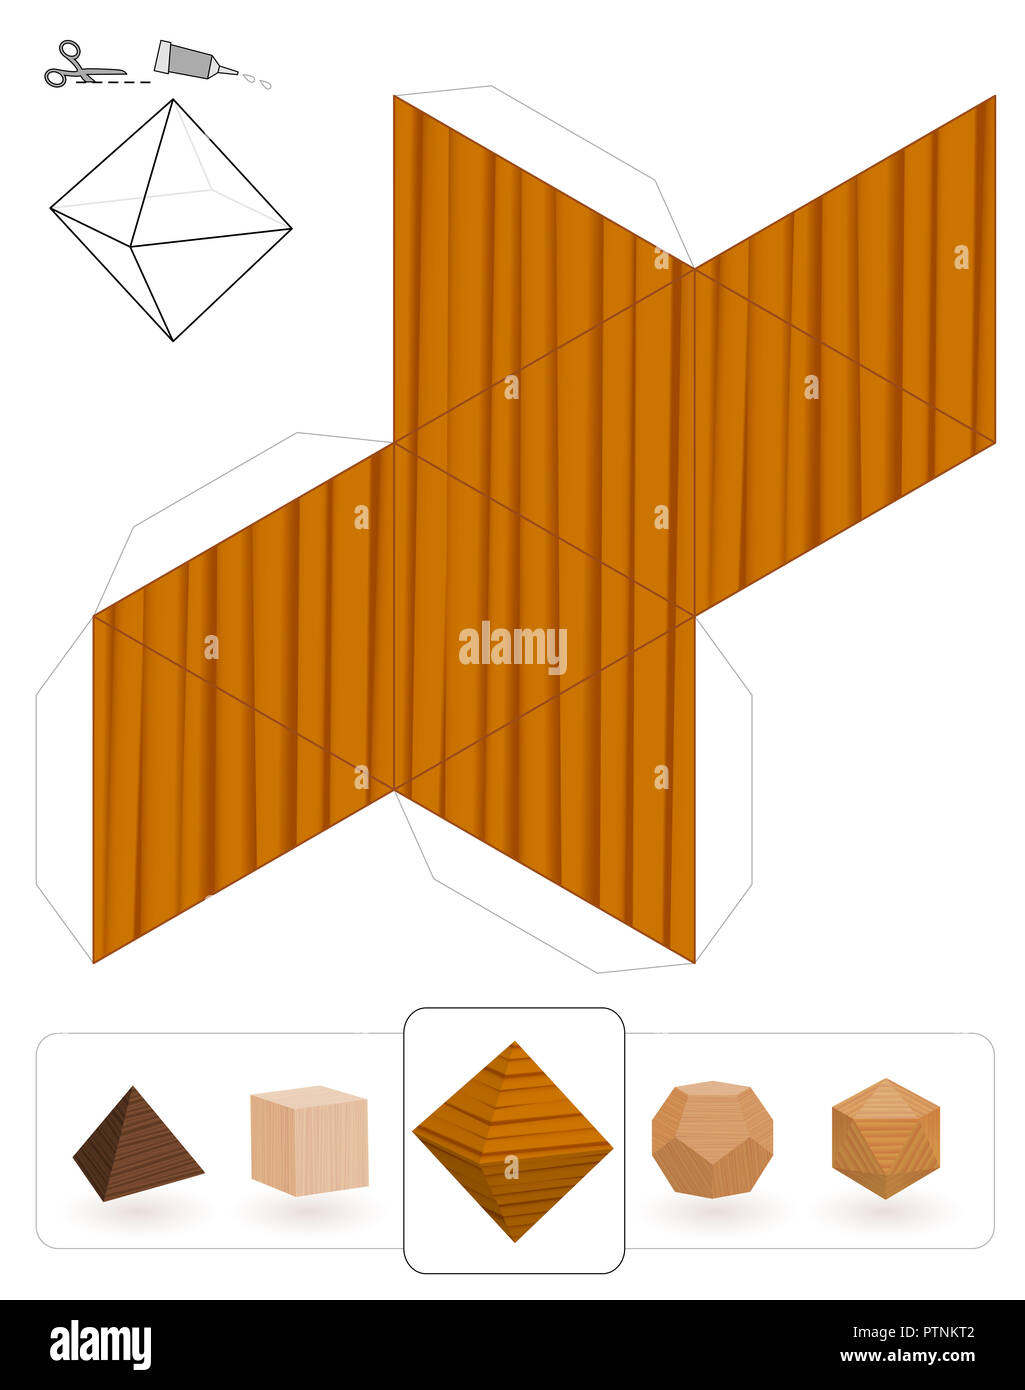 Platonic Solids Stock Photos Platonic Solids Stock Images Alamy